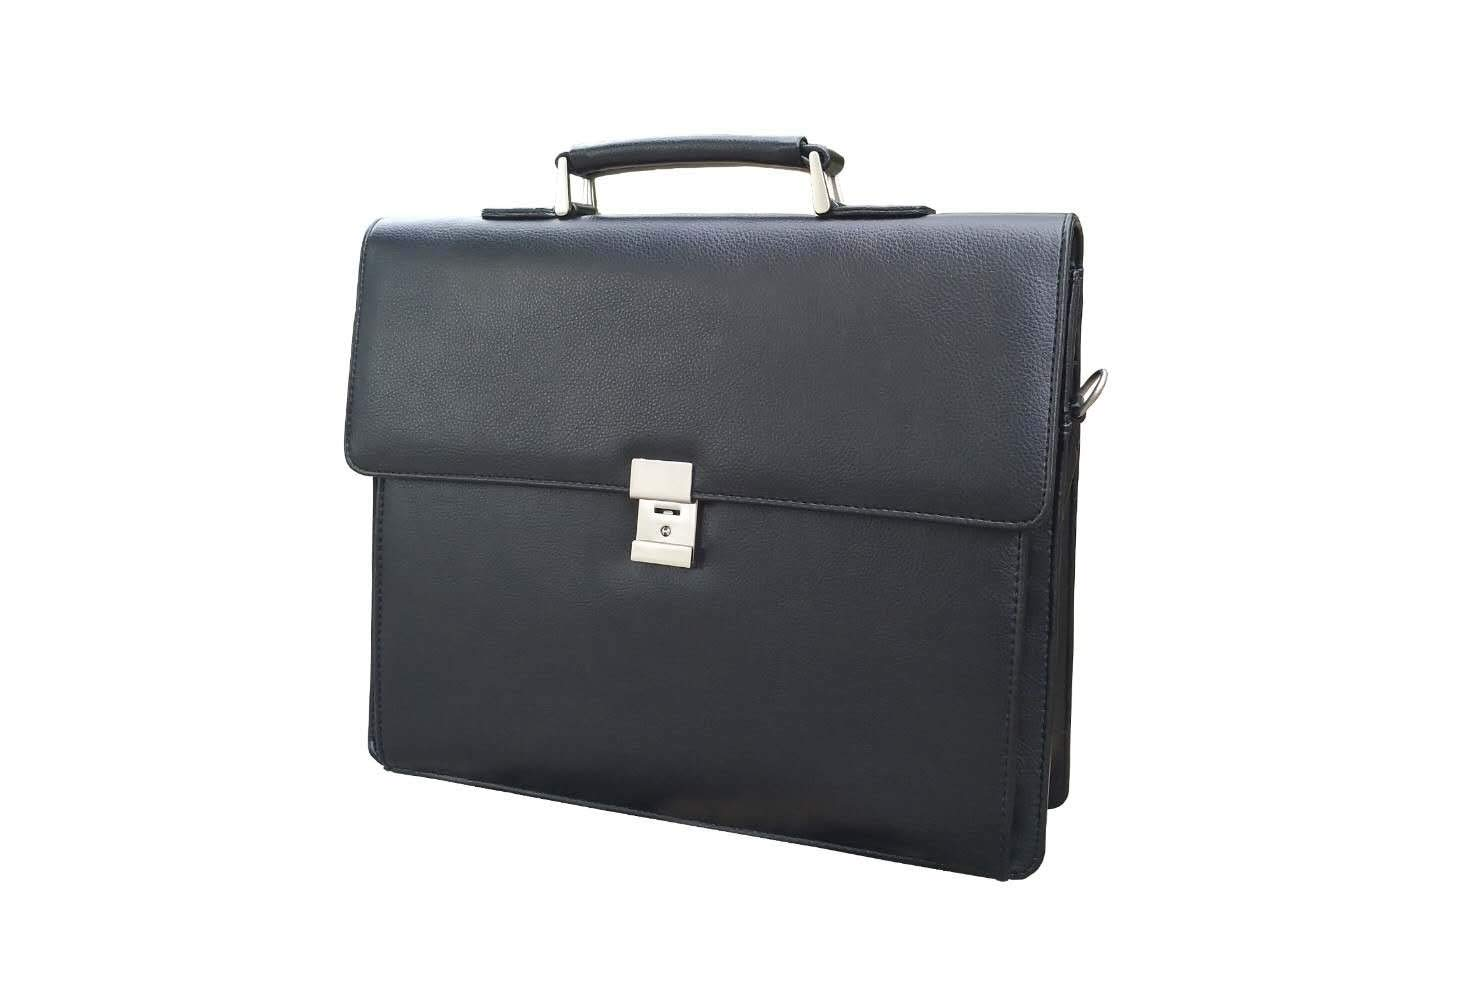 【ON SALE】Mens Leather Business Briefcases Expandable Lawyer Attache Case with Locks 15.6'' Laptop Messenger Bags for Men BLACK by Laura Wales